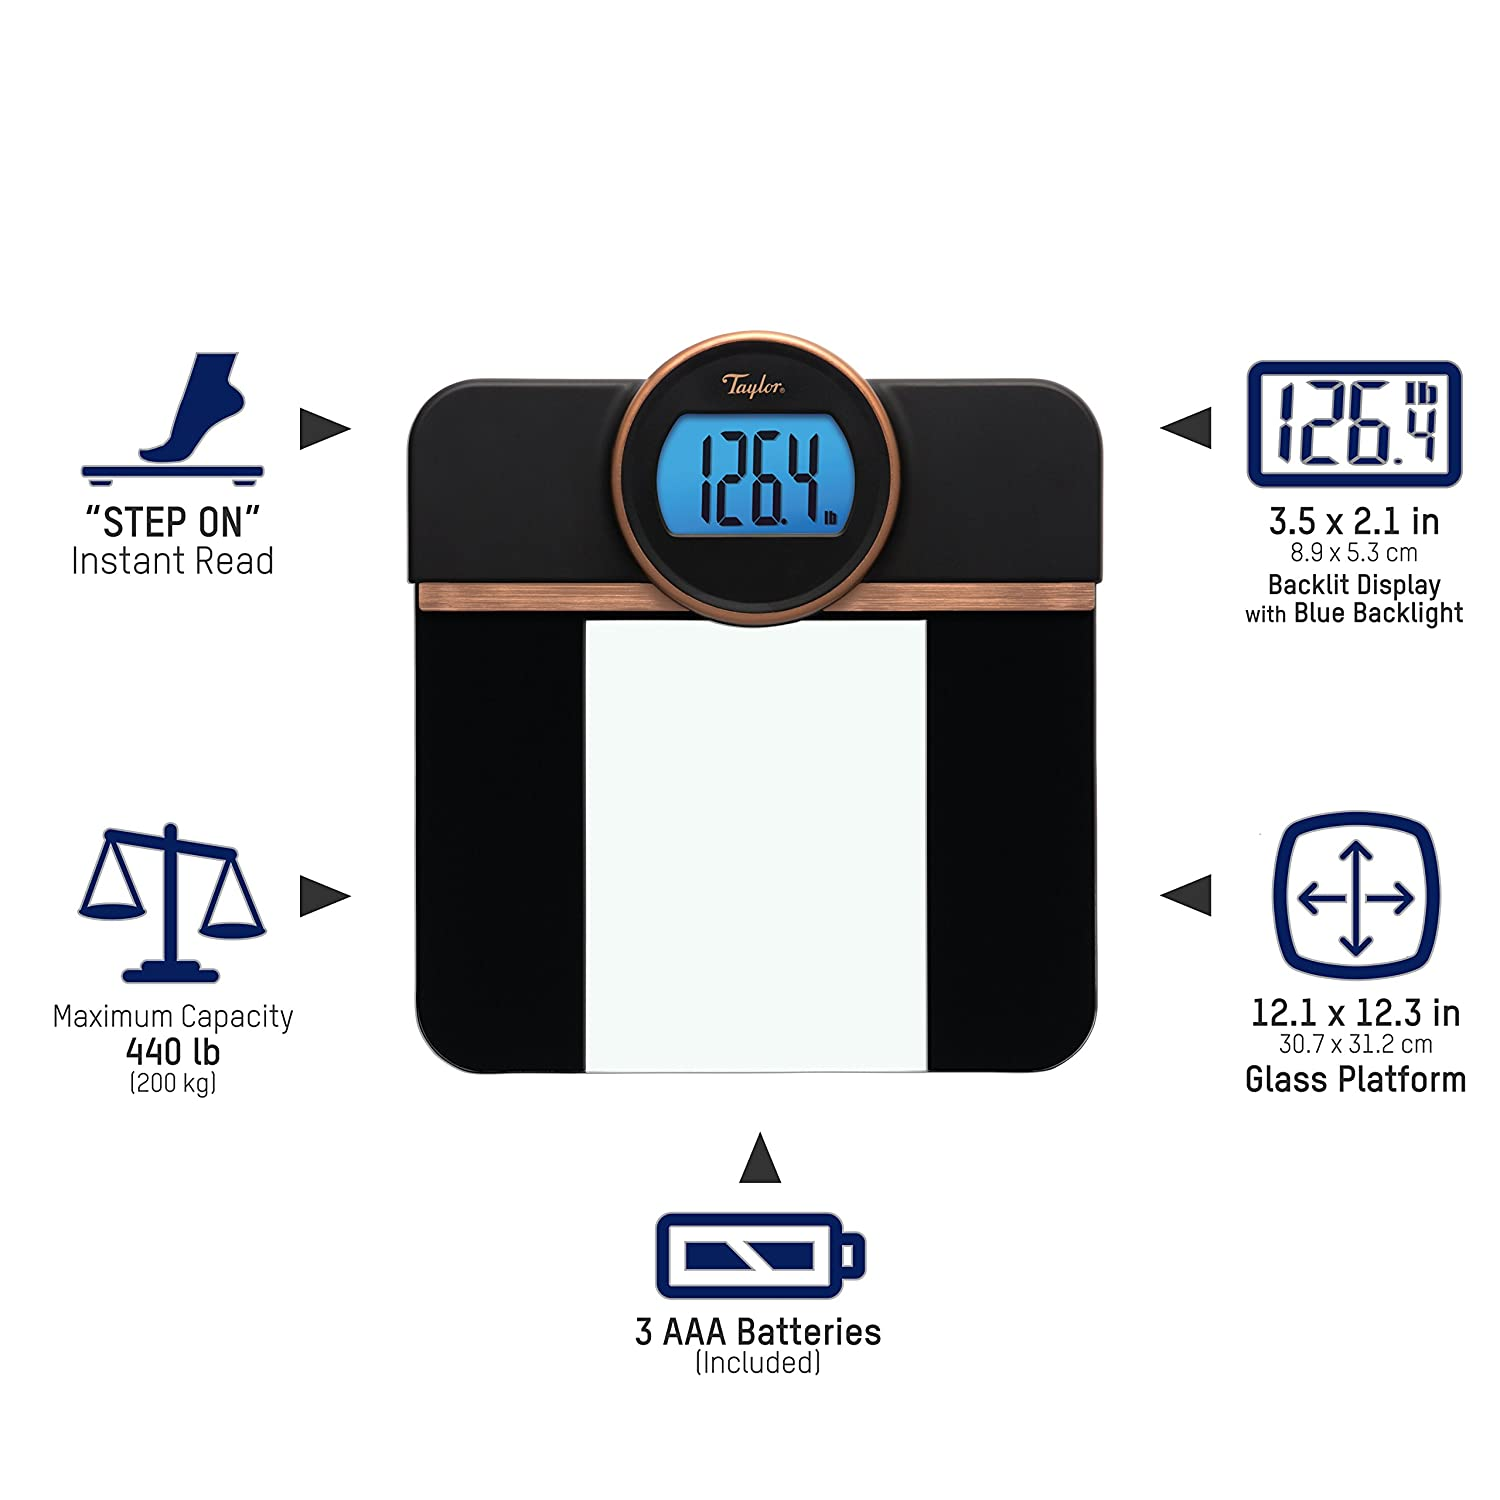 Amazon.com: Taylor Precision Products Taylor Glass Blue Backlight Display (Black) Retro Digital Bath Scale: TAYLOR(R) PRECISION PRODUCTS: Home & Kitchen